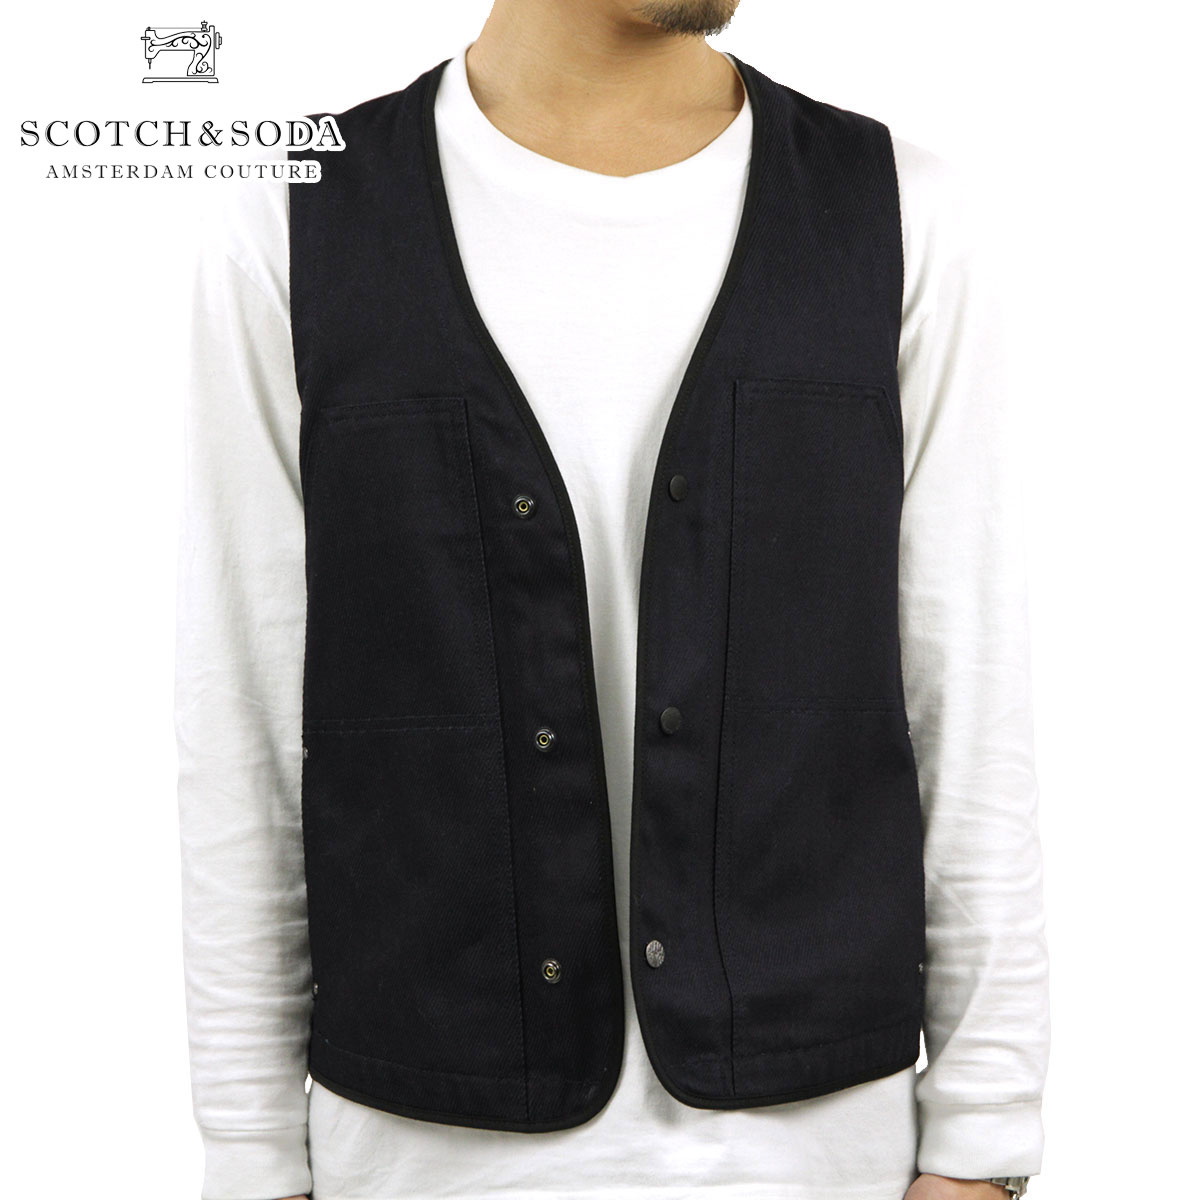 スコッチアンドソーダ SCOTCH&SODA 正規販売店 メンズ ジレ Mixed indigo twill and canvas slim worker vest 31304 51 D15S25